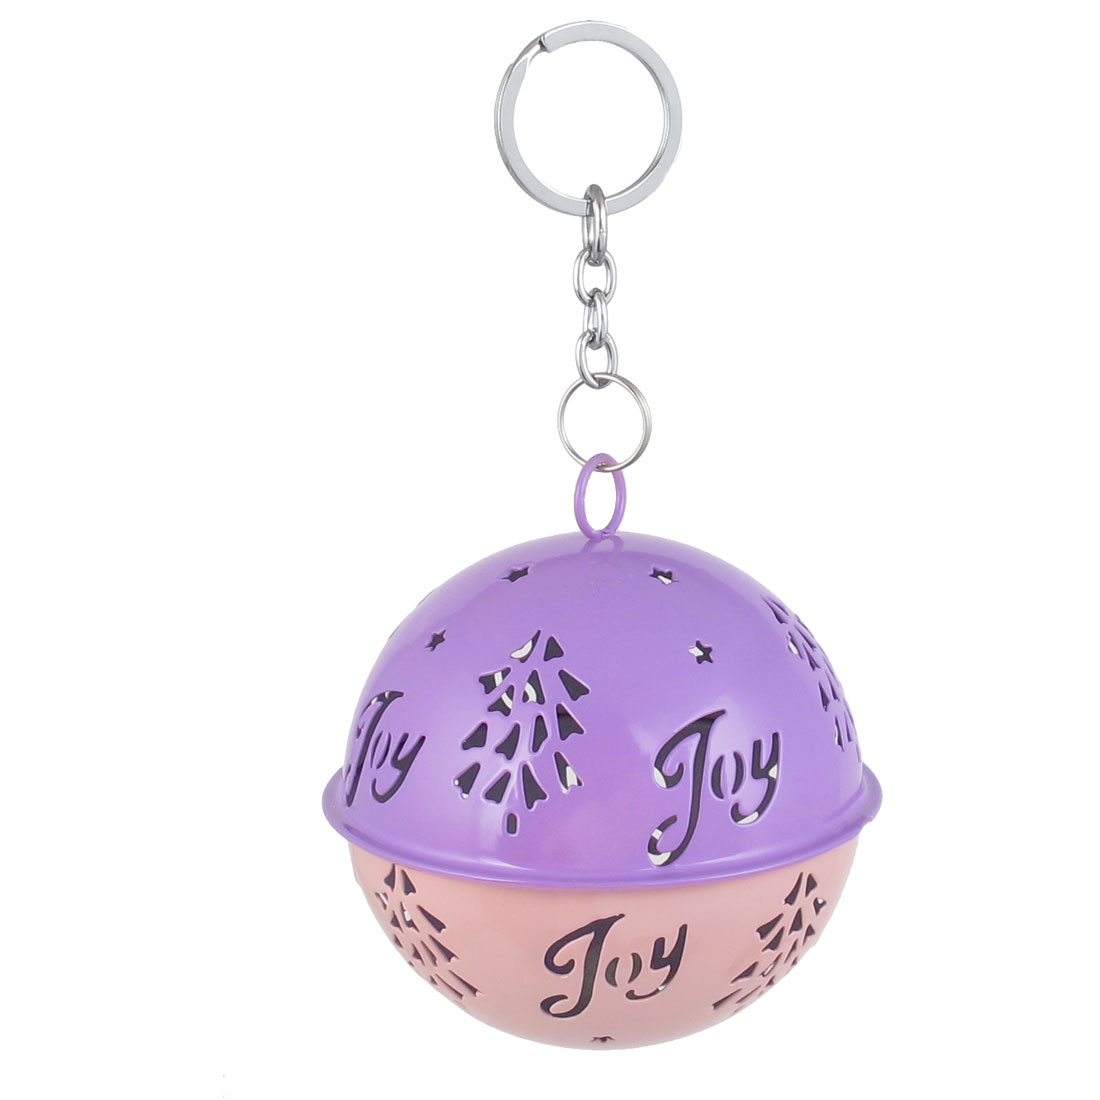 85mm Diameter Purple Pink Metal Christmas Tree Detail Ball Shape Keychain Hollow Out Design Jingle Ring Bell Ornament for Celebration Party Case